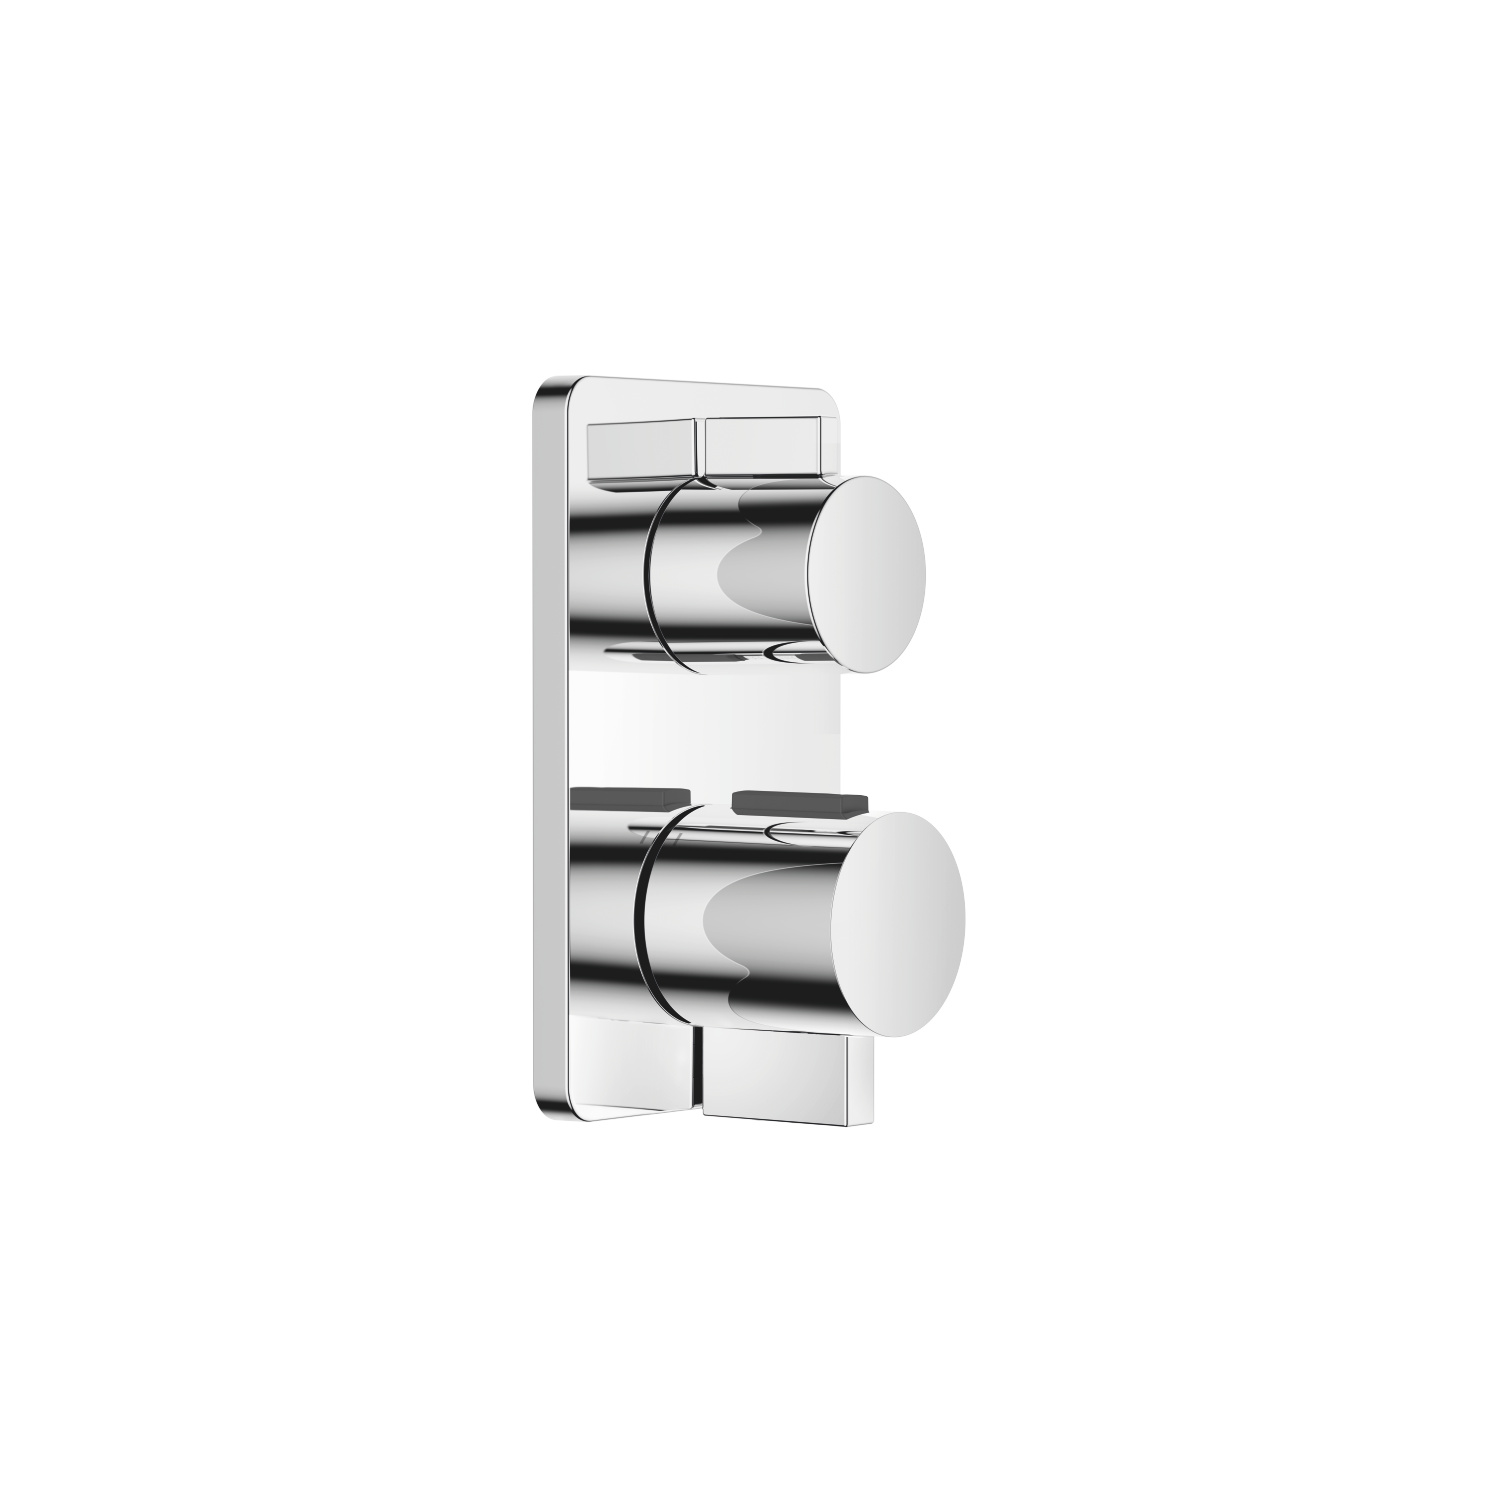 Concealed thermostat with one function volume control - polished chrome